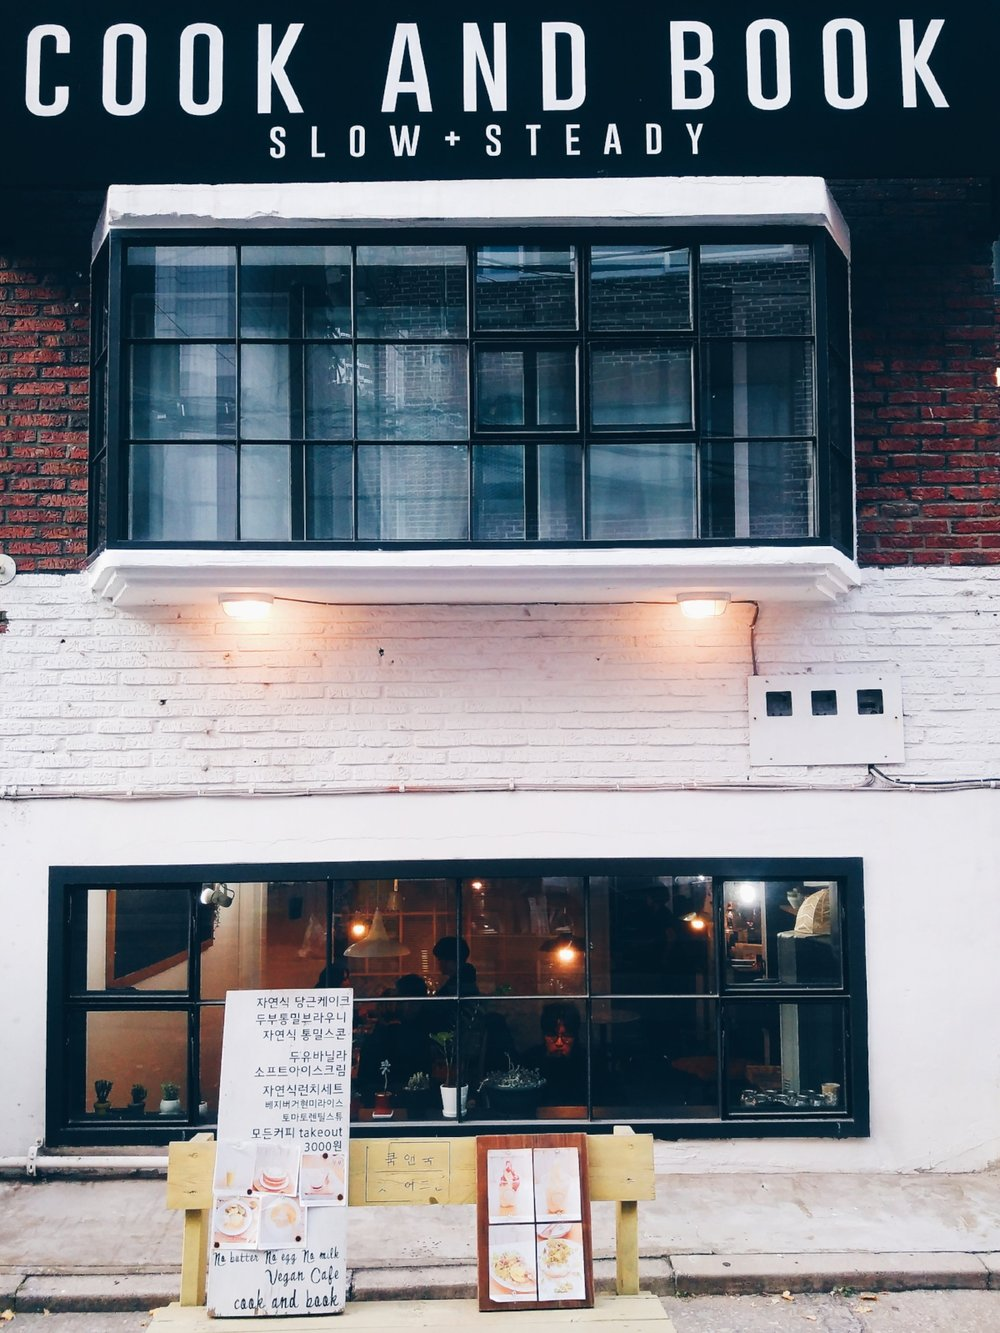 Things to do in Hongdae, Seoul: A creative travel diary & bullet journal doodles. How to spend a day in the area around the (artsy) Hongik University in Seoul - the whole area is famous for its nightlife and shopping opportunities, but there are hidden places and side streets to discover. Follow me around Hongdae from morning till night, from art shops to restaurants, creative events to concerts, and I hope you get some ideas on how to spend a laid-back day in Seoul. With travel sketches and a creative bullet journal vacation layout idea.